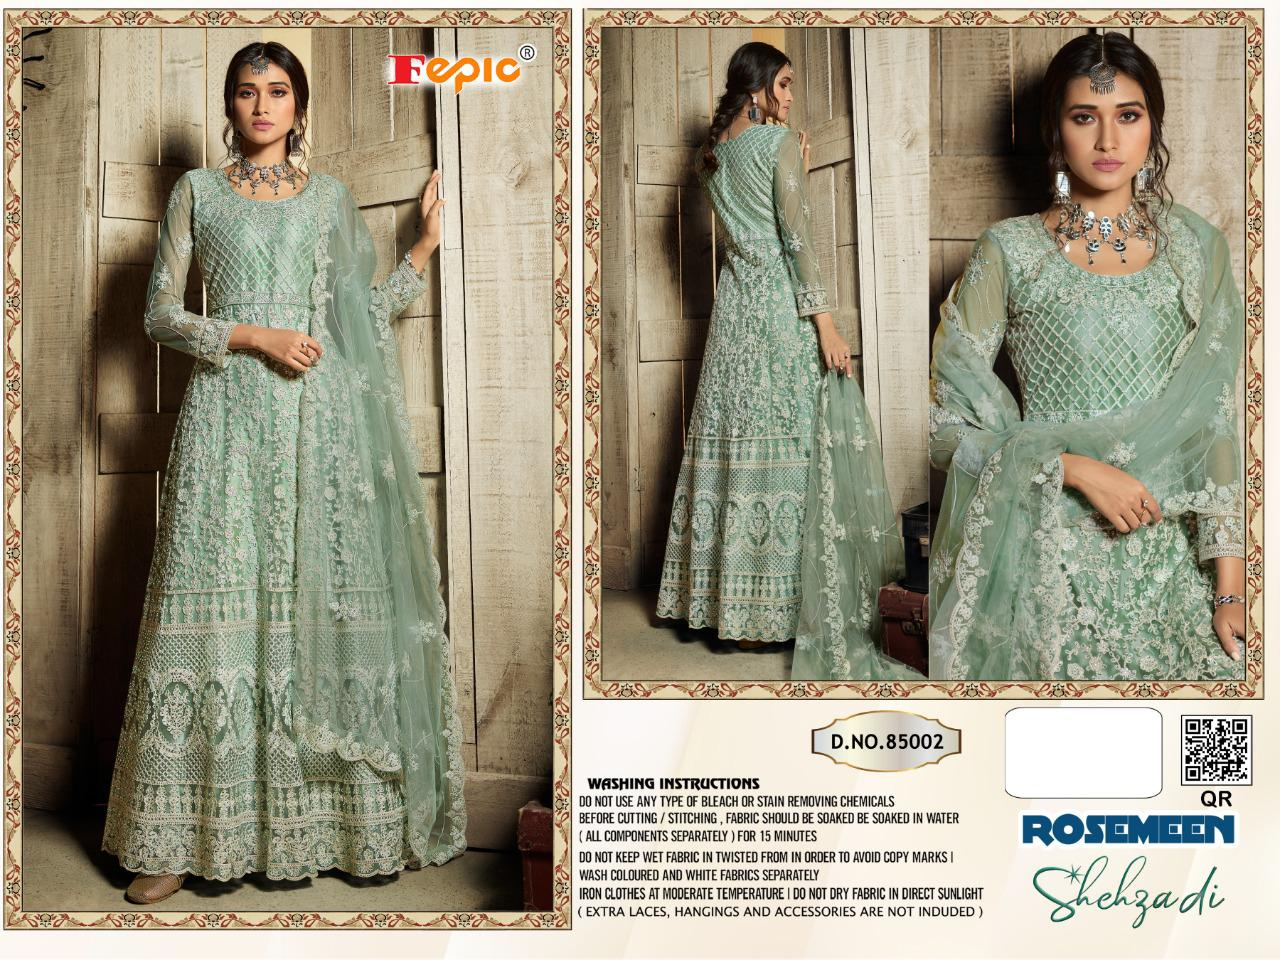 Fepic Rosemeen Shehzadi Heavy Designer Net With Heavy Embroidery Work Pakistani Dress Material At Wholesale Rate